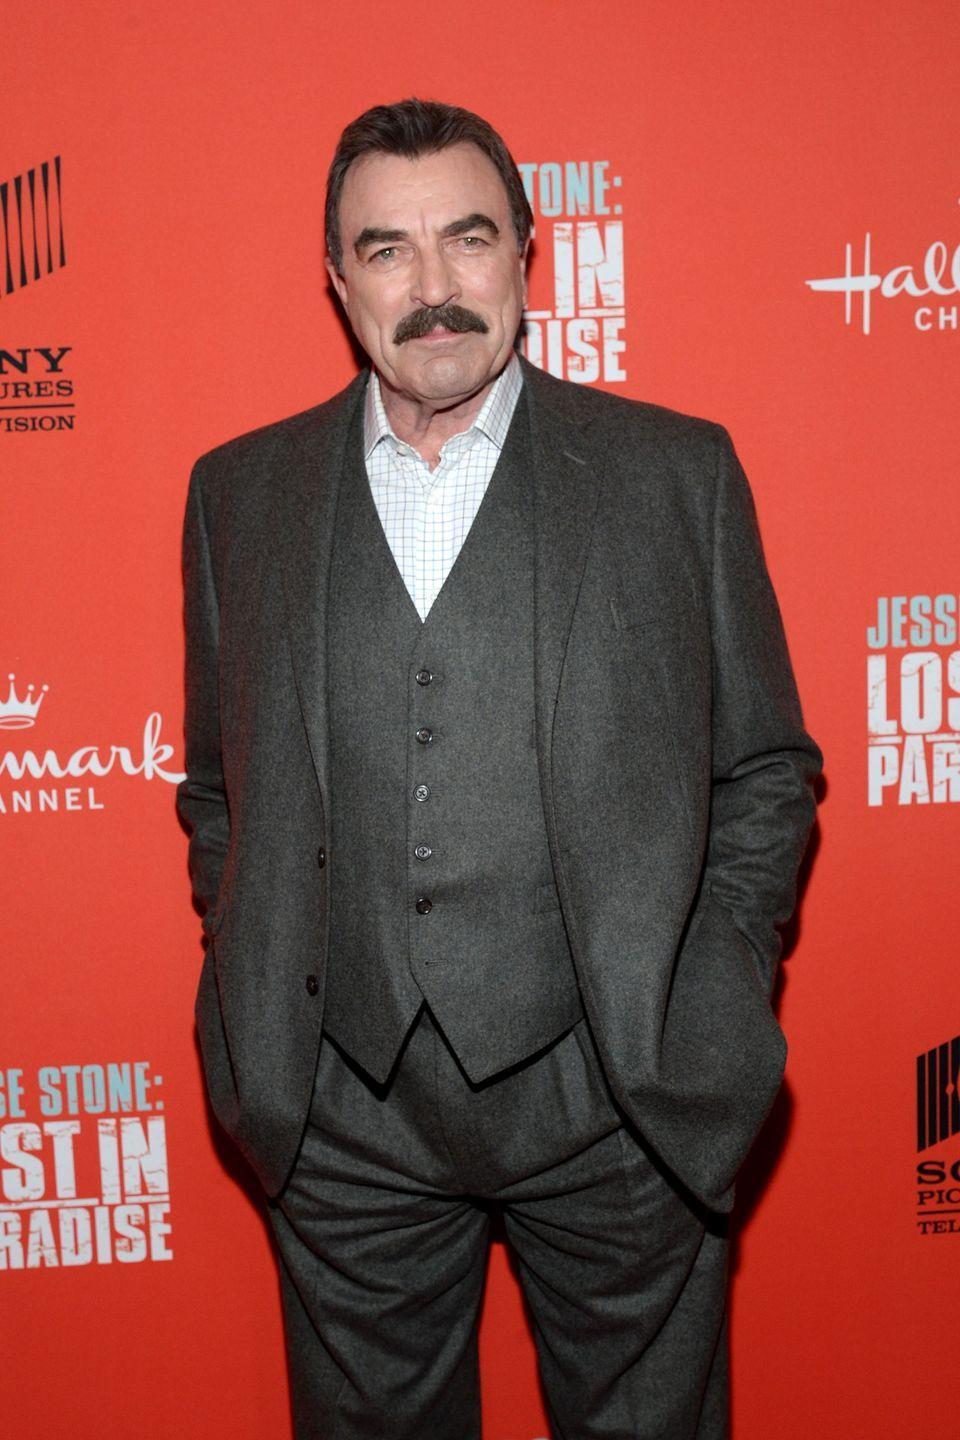 """<p>The actor got a basketball scholarship to attend the University of Southern California. However, outside of the gym, Selleck was also a <a href=""""https://www.hillsdalesigmachi.com/new-page"""" rel=""""nofollow noopener"""" target=""""_blank"""" data-ylk=""""slk:member of Sigma Chi"""" class=""""link rapid-noclick-resp"""">member of Sigma Chi</a>. </p>"""